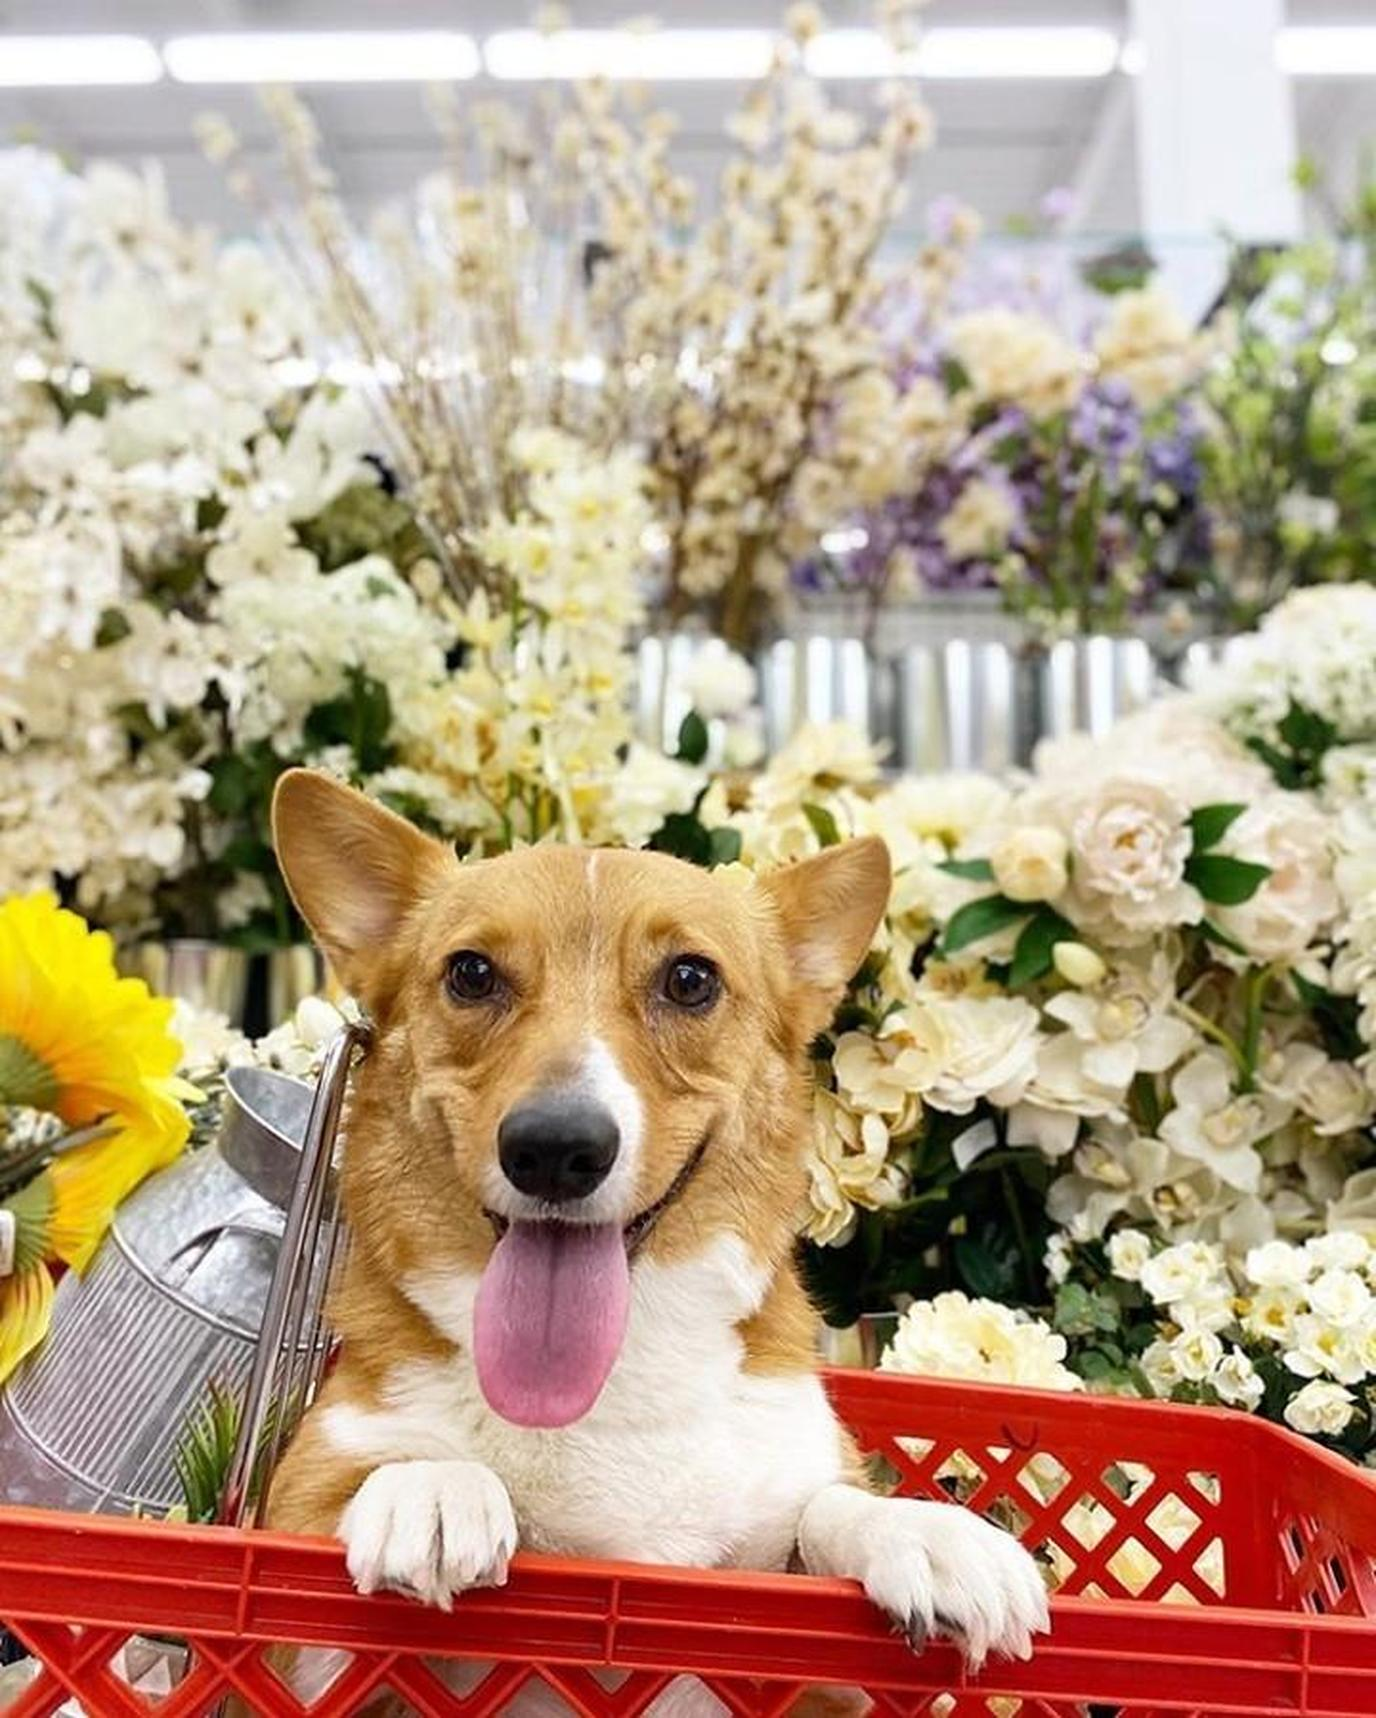 This fall take your dog to shop at one of the pet friendly stores.